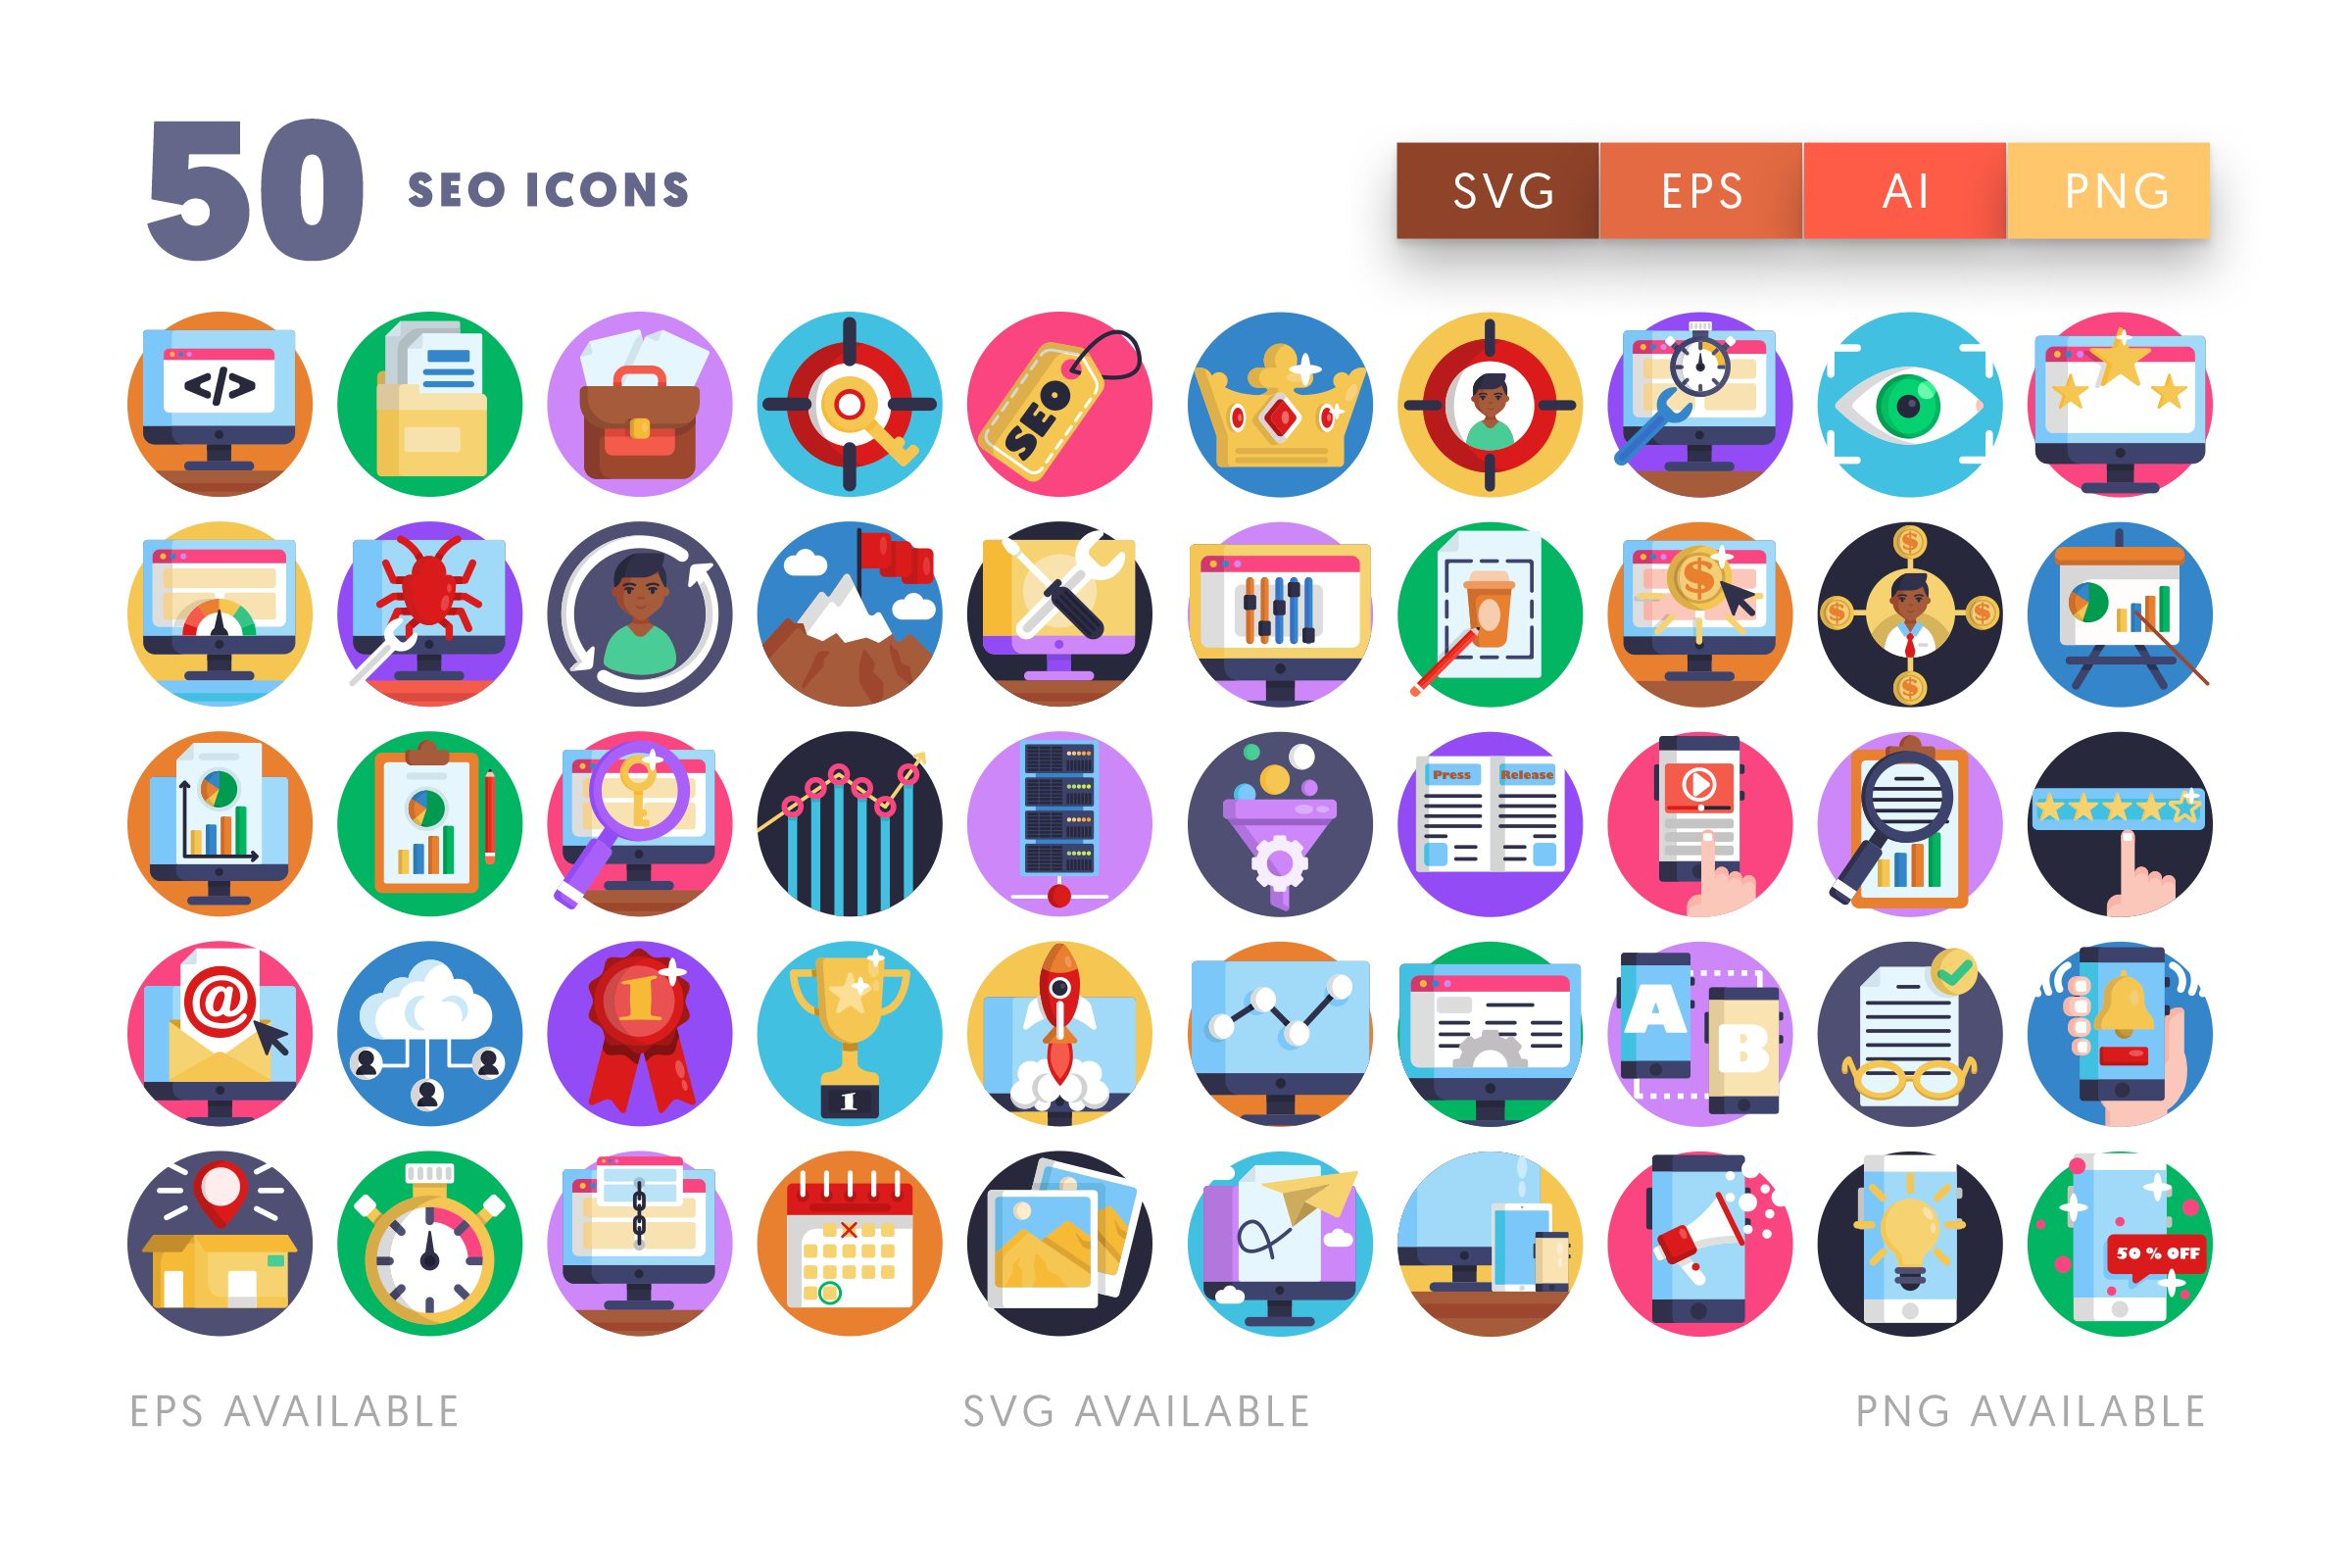 SEO icons png/svg/eps